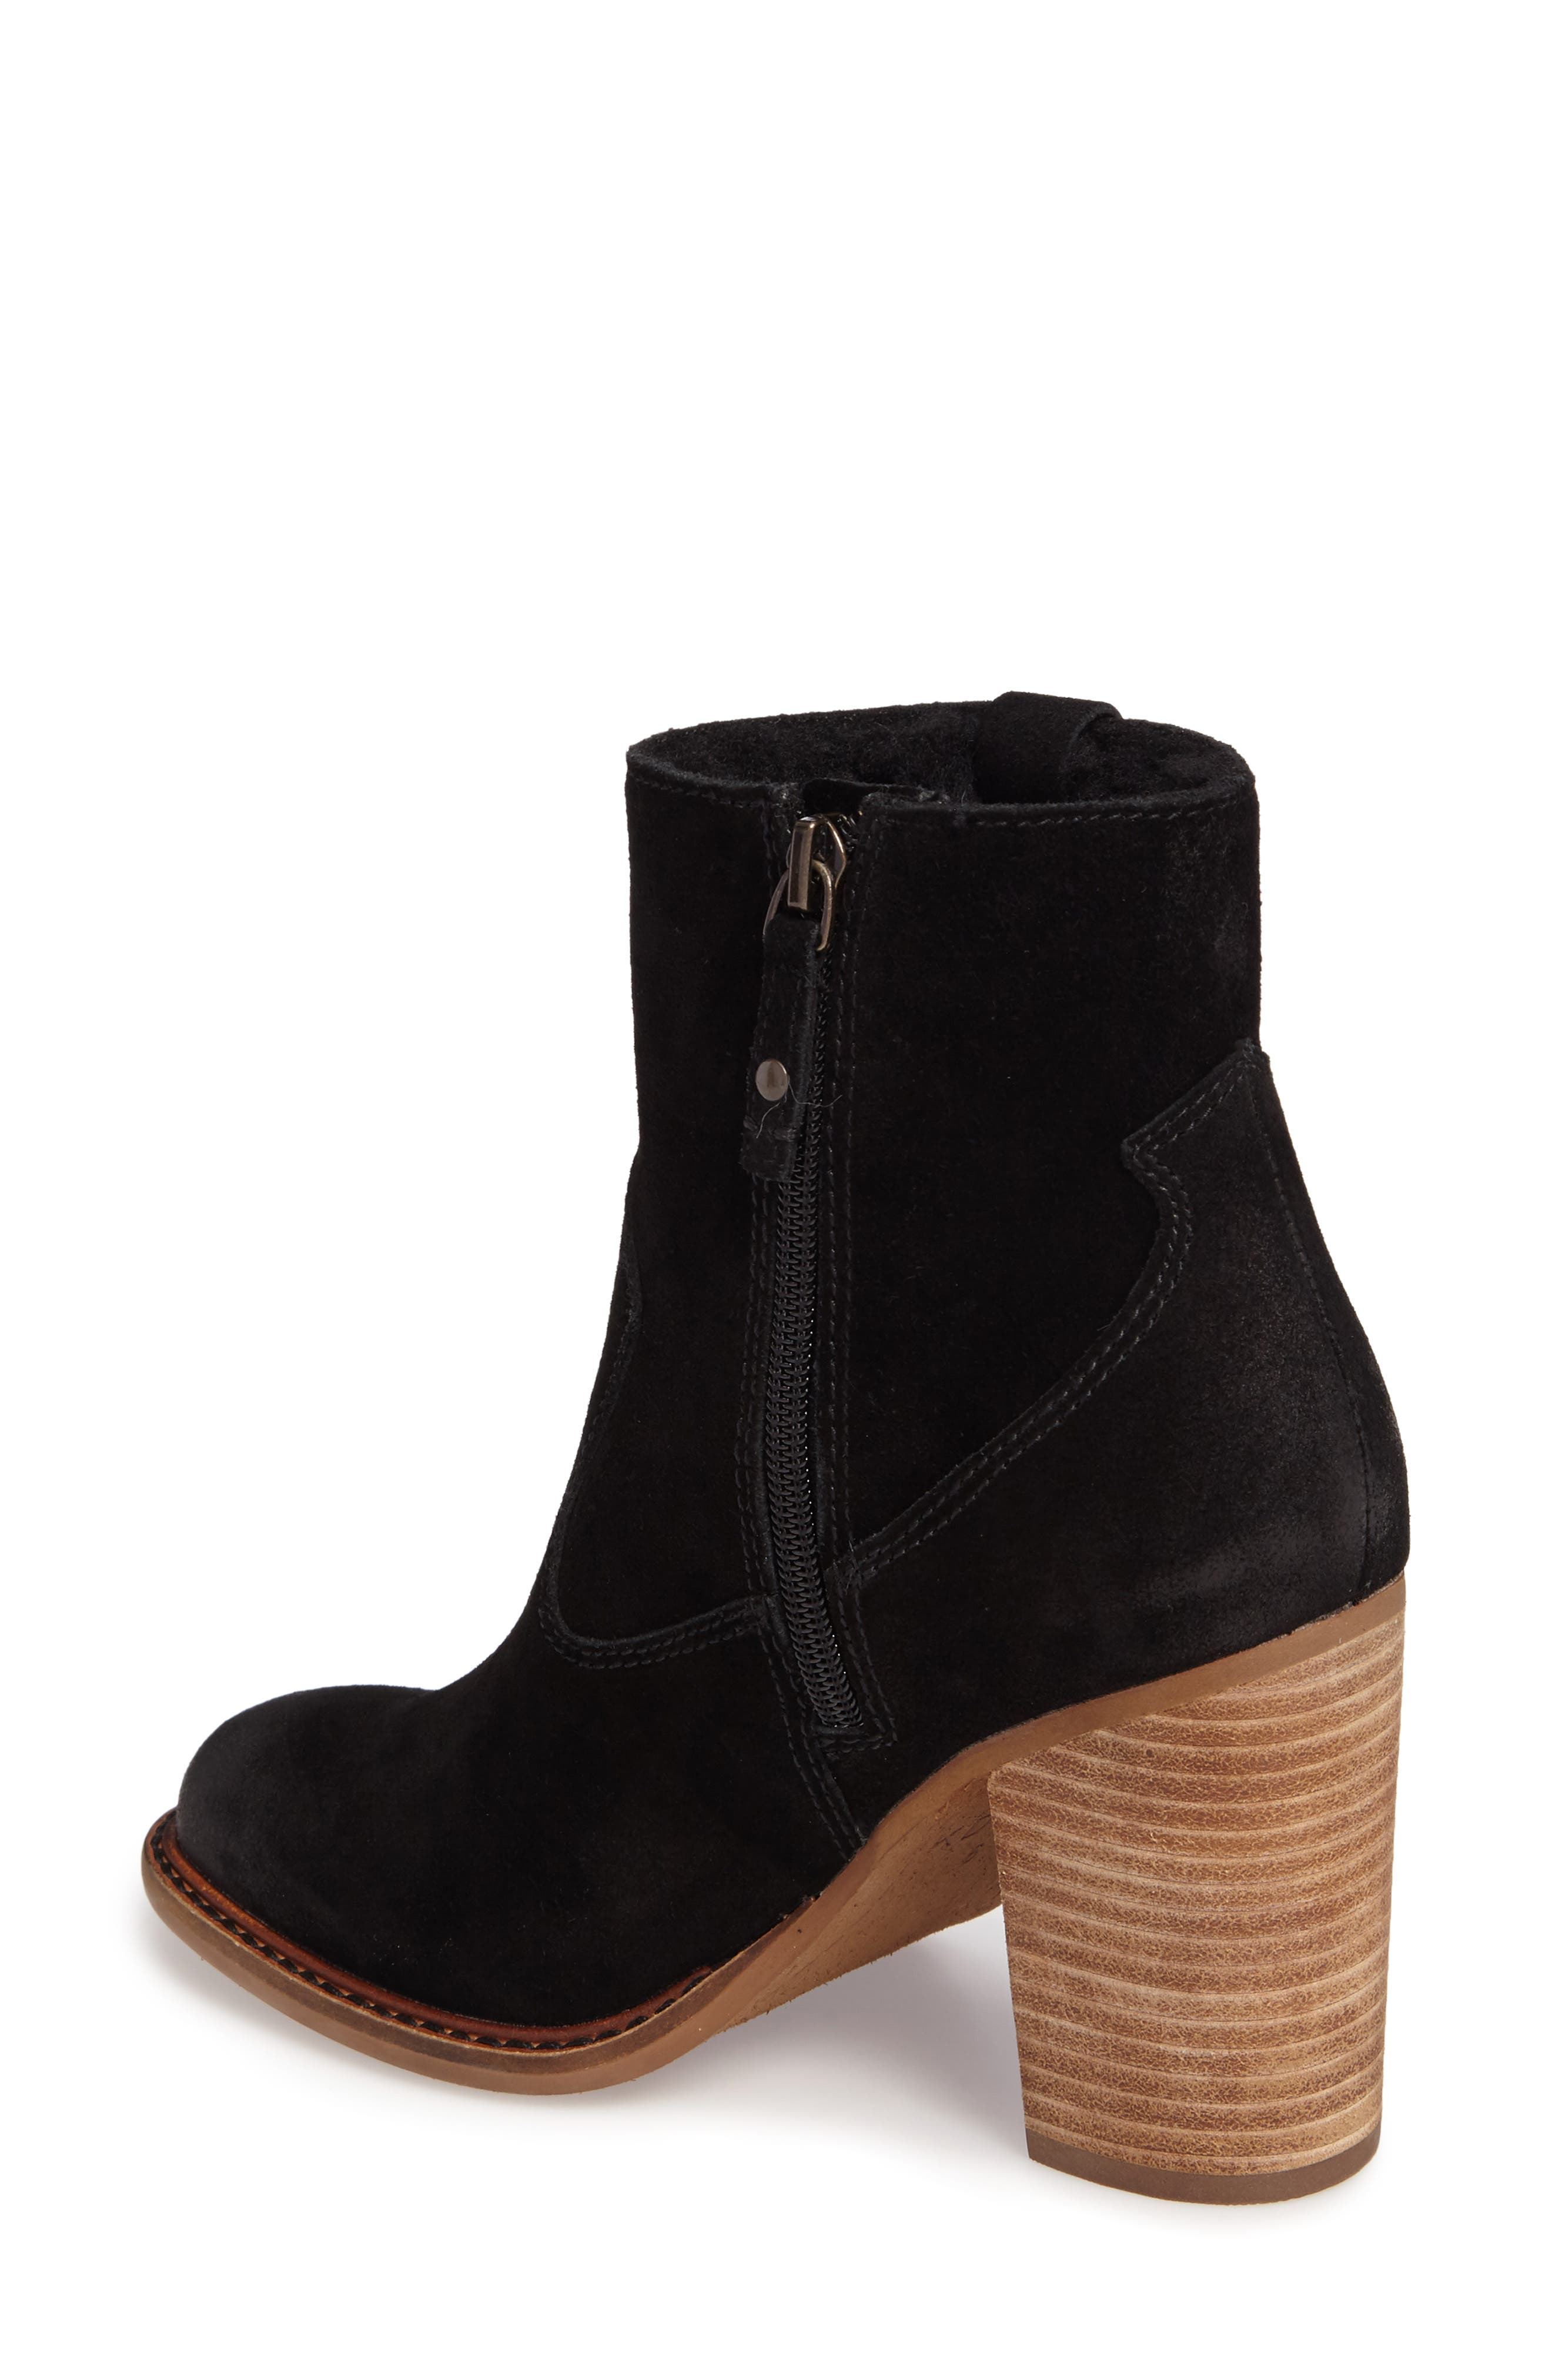 Legion Bootie with Faux Shearling Lining,                             Alternate thumbnail 2, color,                             Black